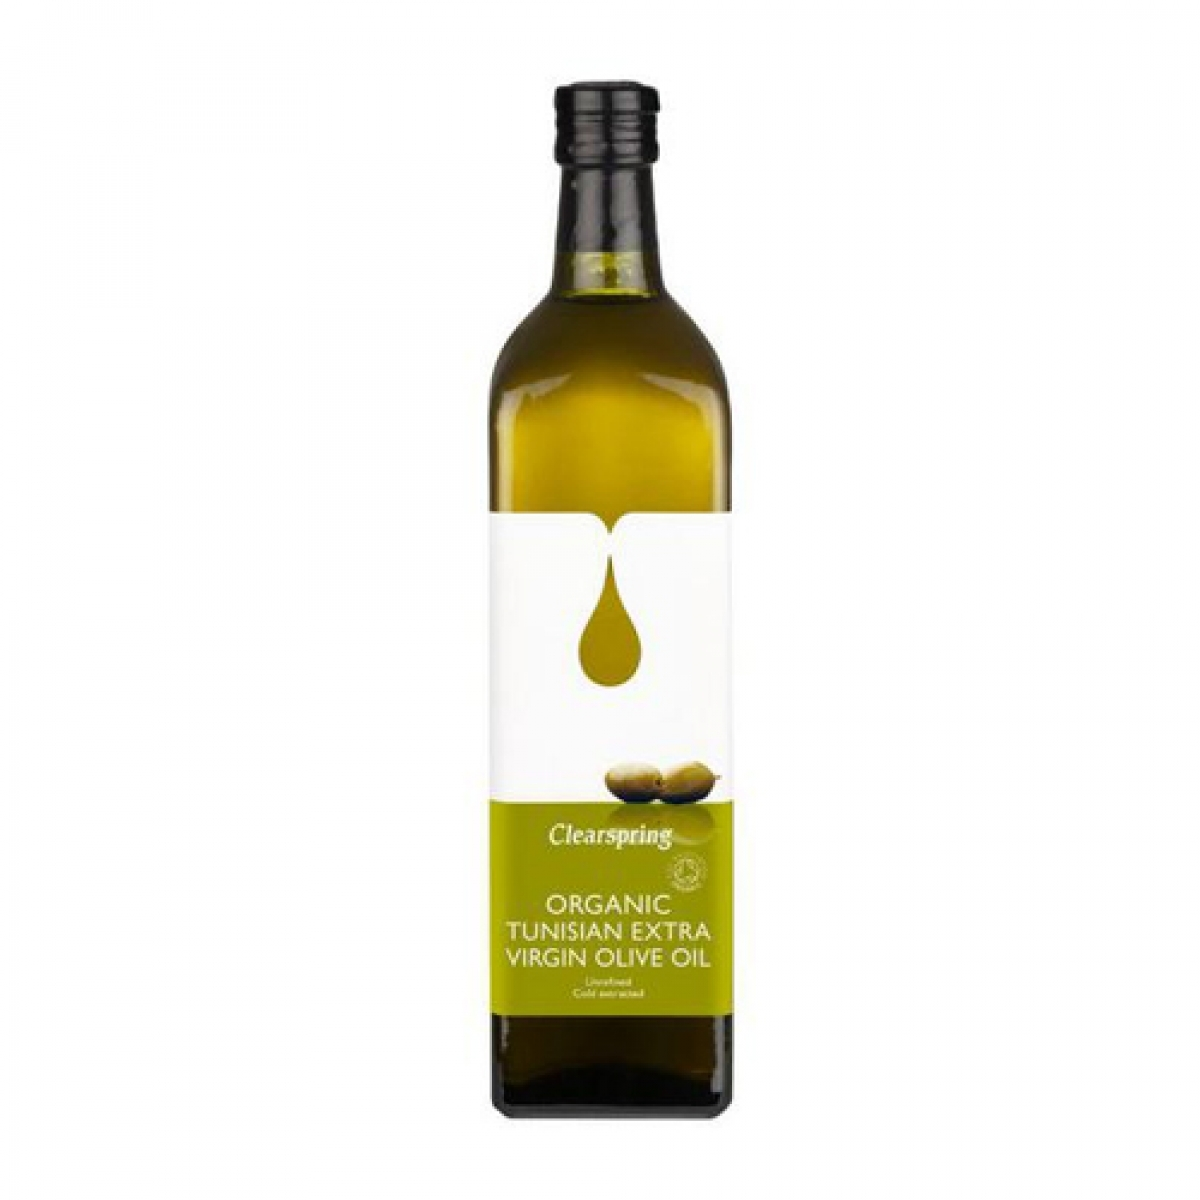 Clearspring – Organic Tunisian Extra Virgin Olive Oil (500ml)